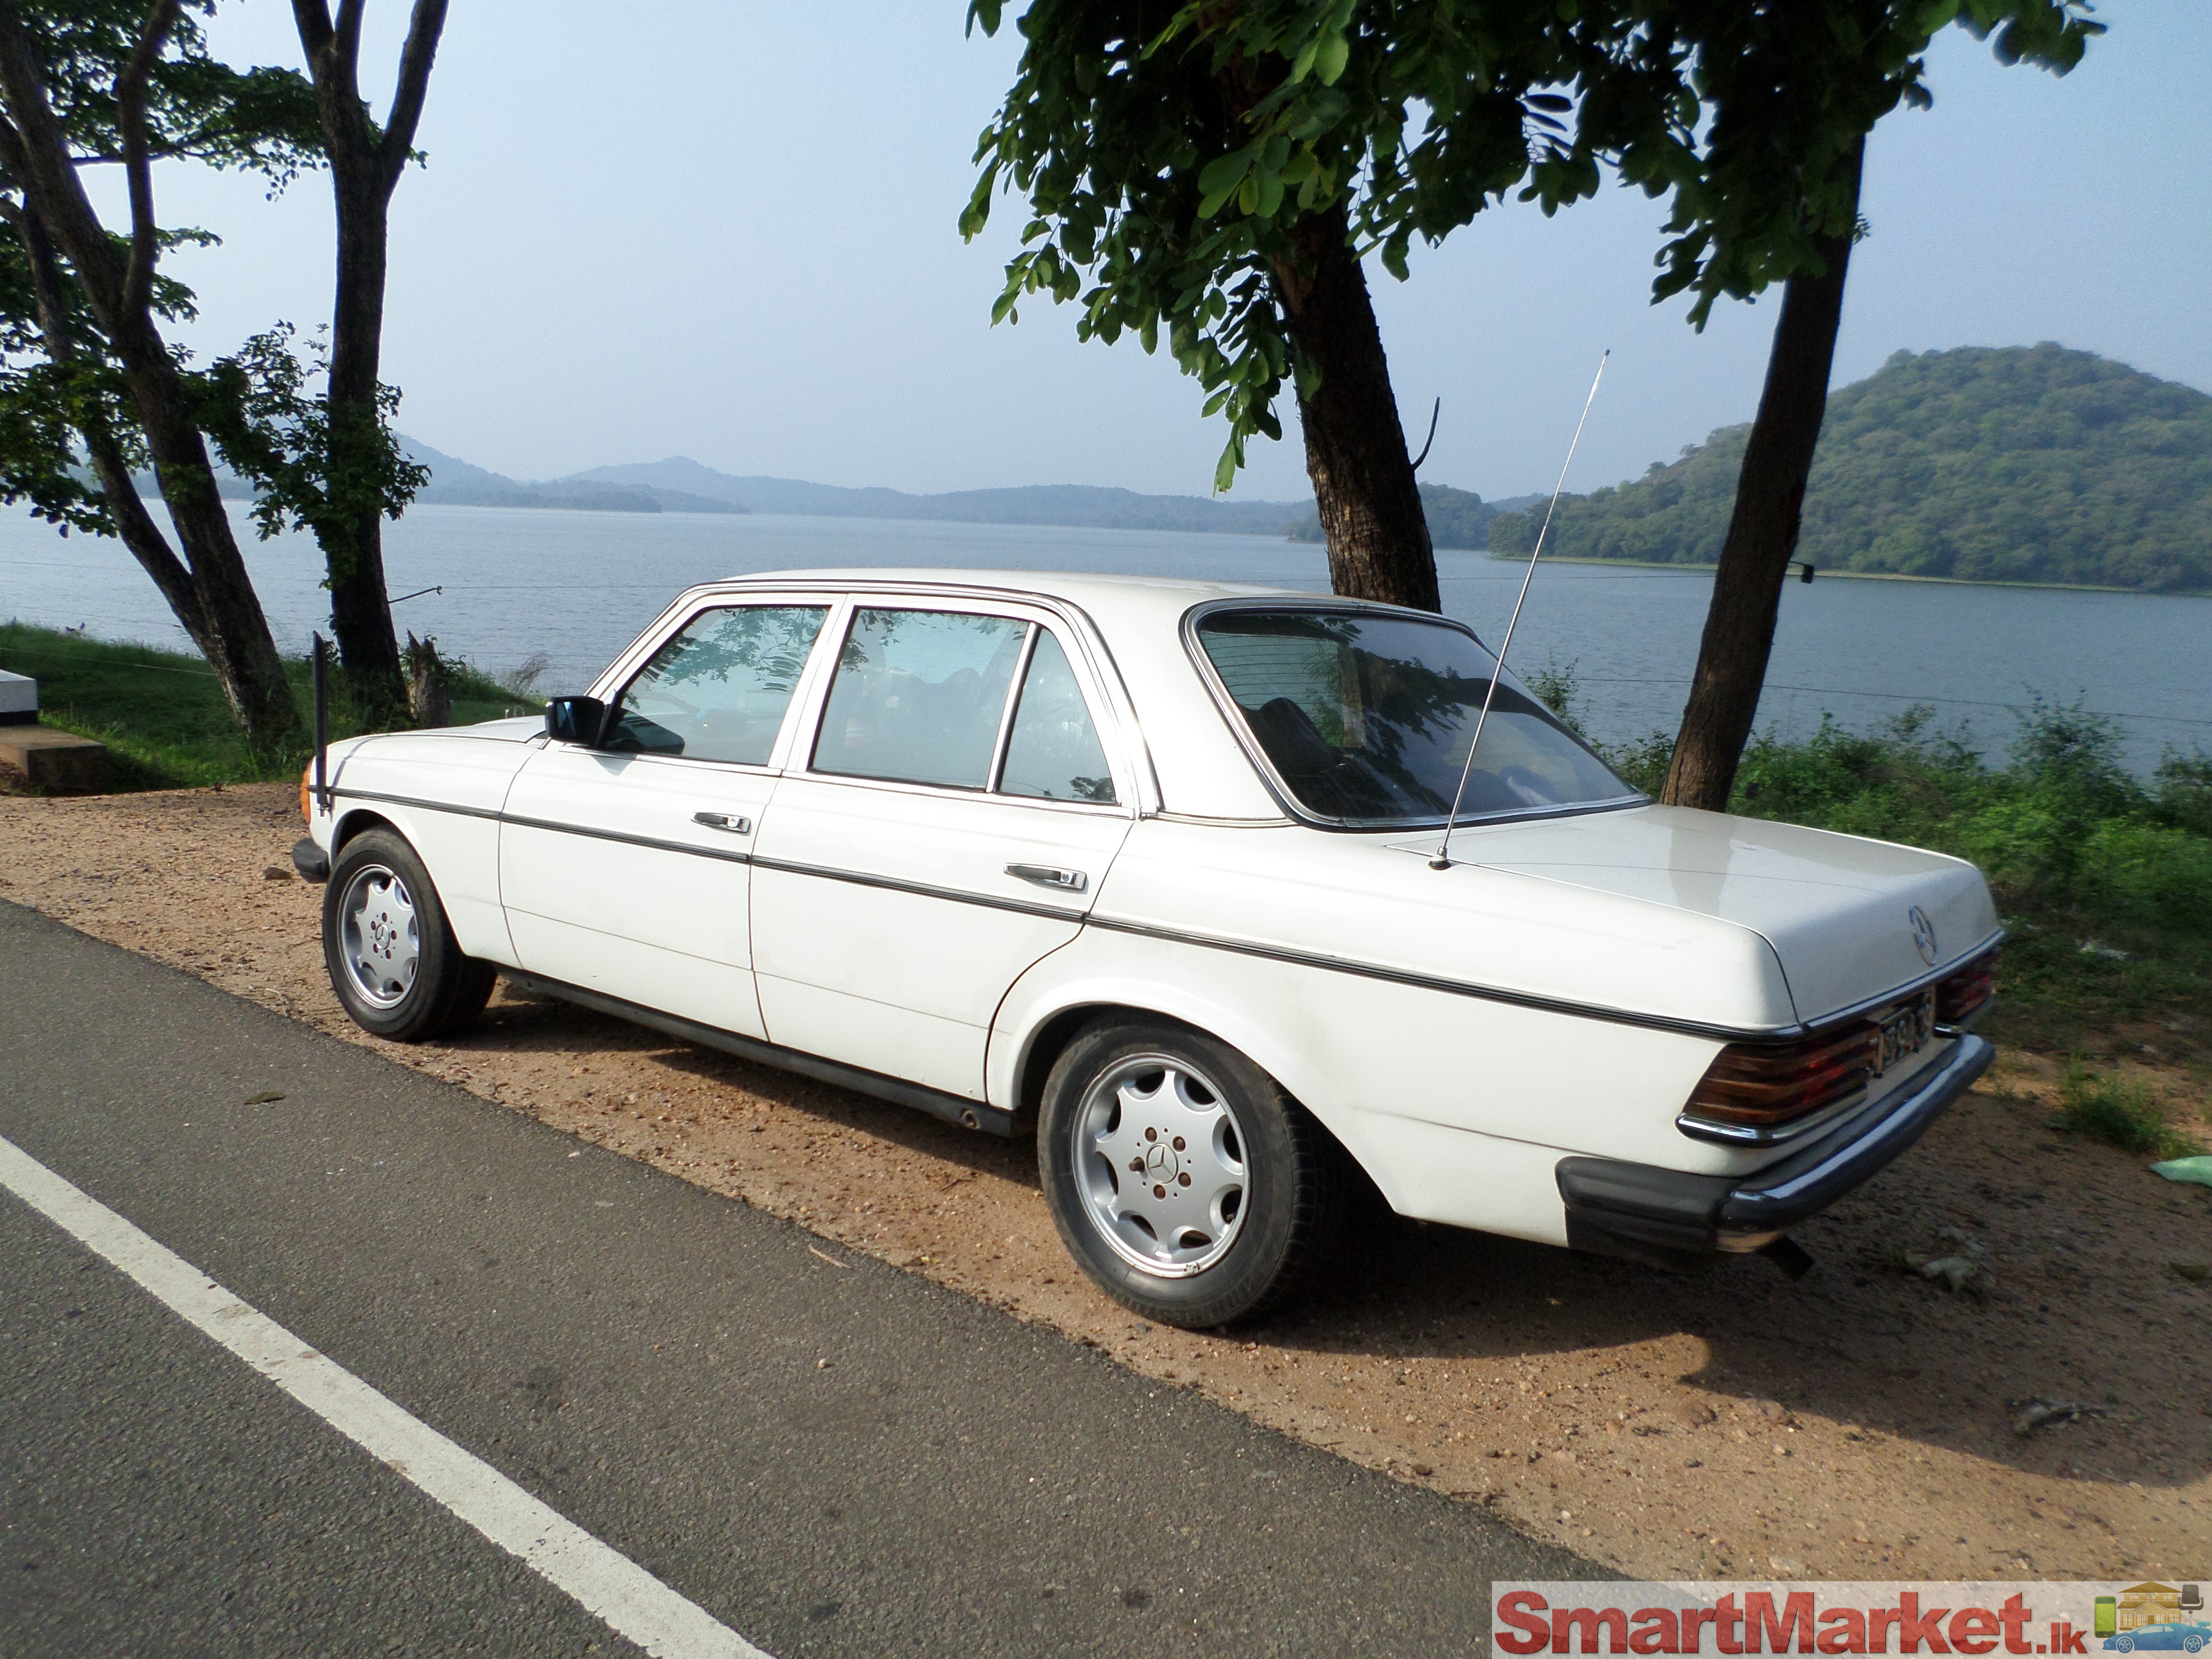 Mercedes benz w123 for sale in sri lanka for Mercedes benz w123 for sale